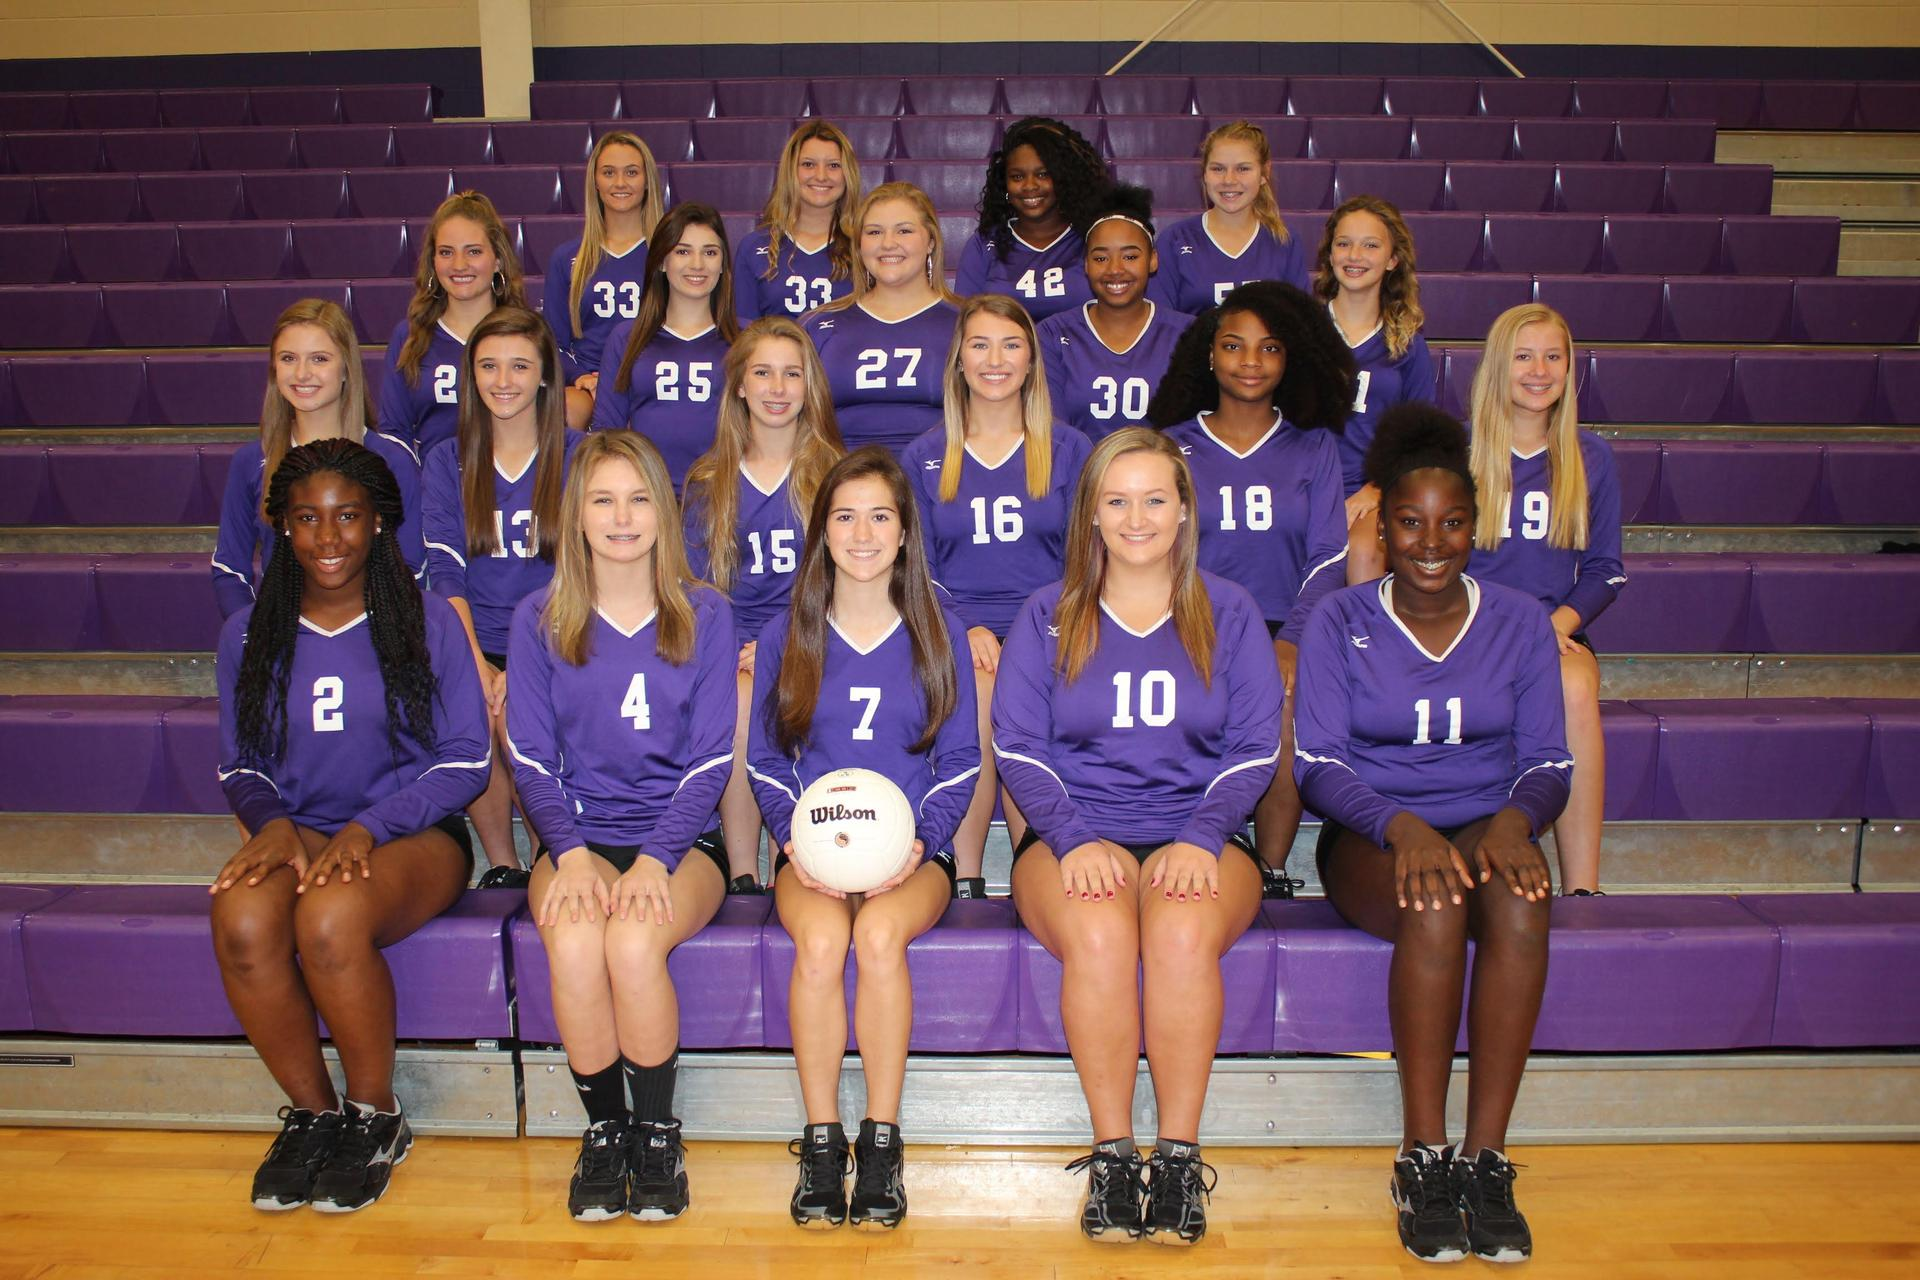 2018 BCHS Volleyball Team